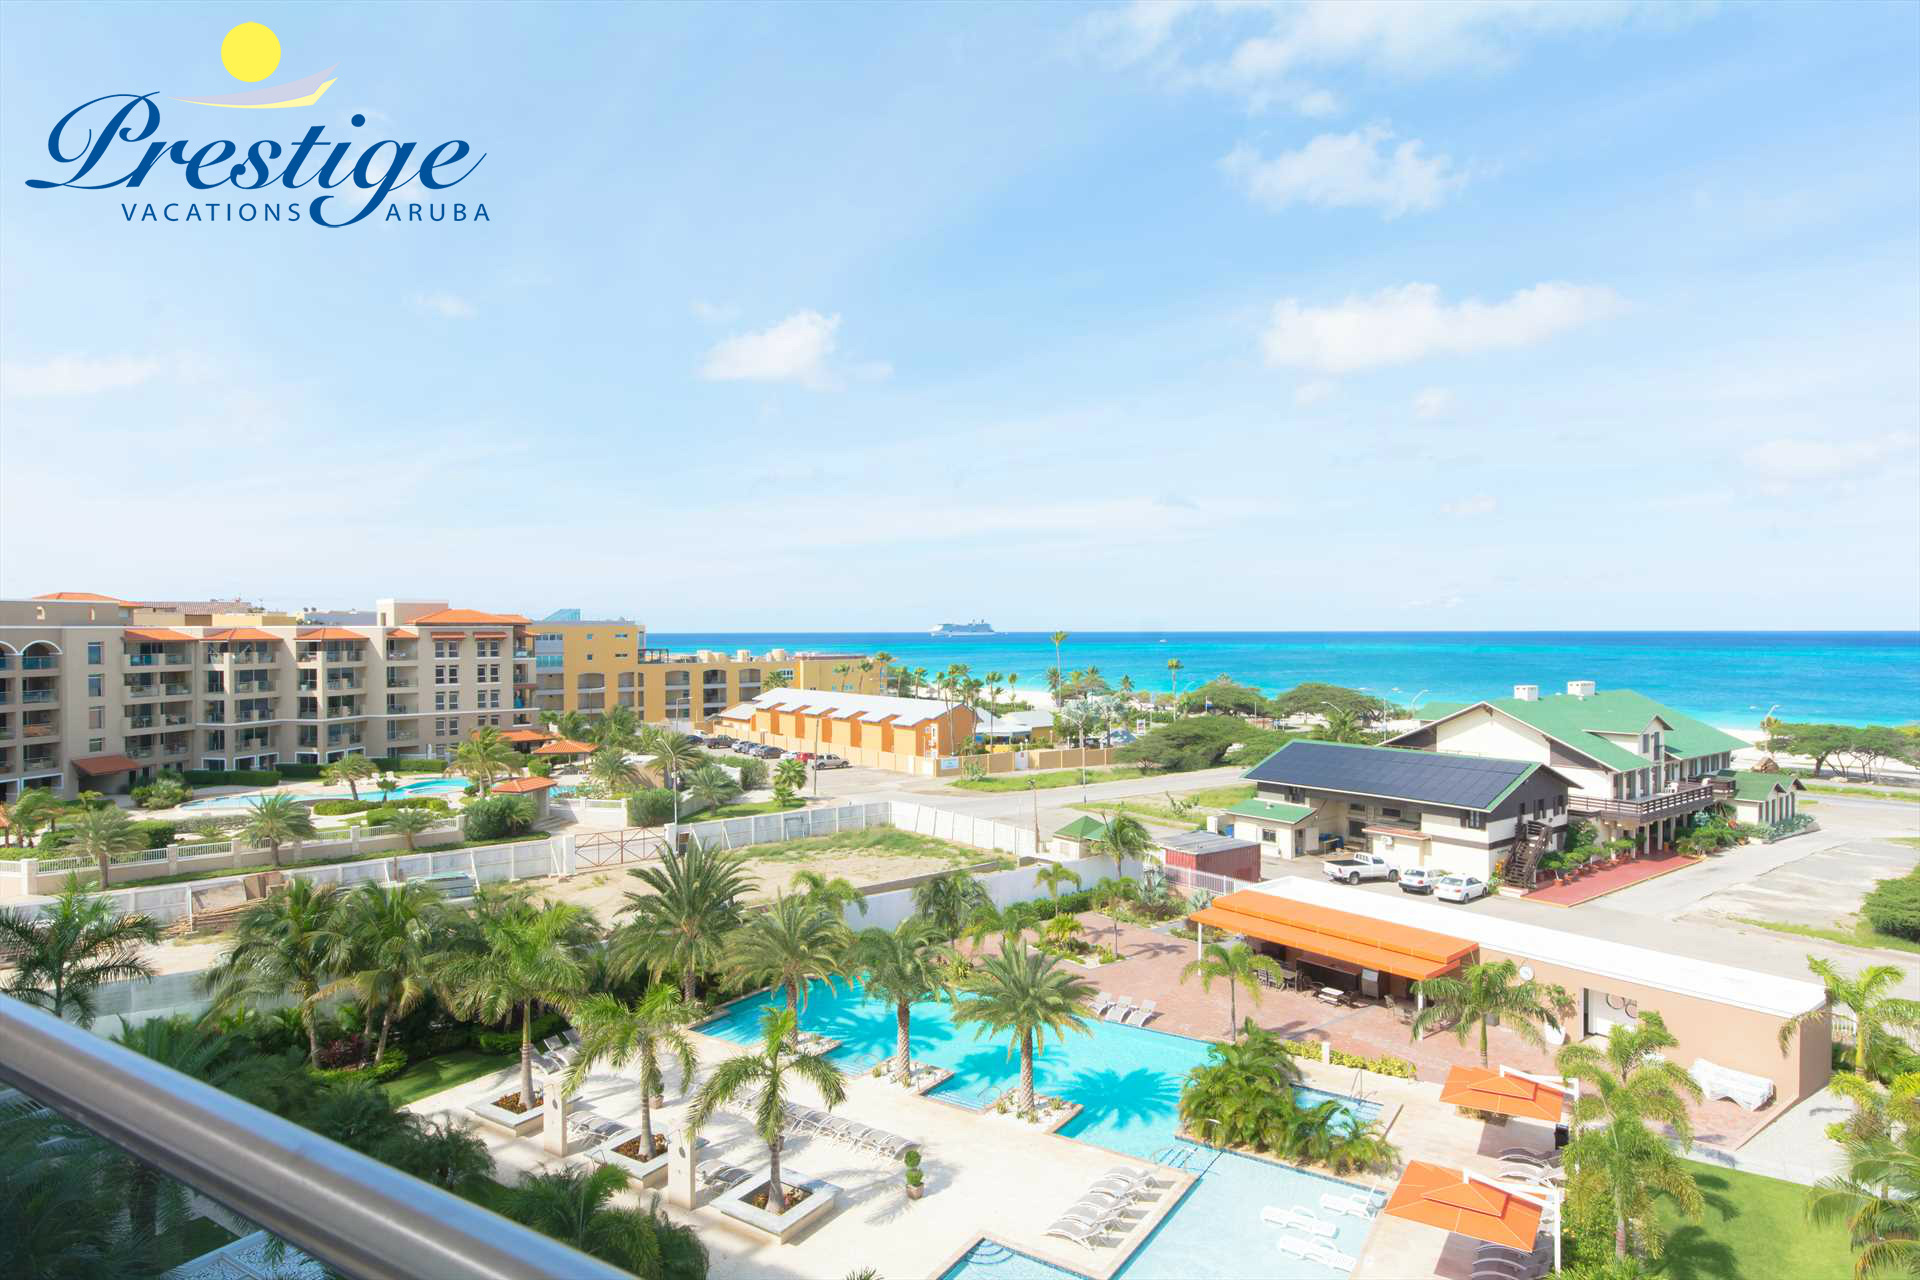 Your Eagle Beach view from the Coastal View Two-bedroom condo at LeVent Beach Resort Aruba!